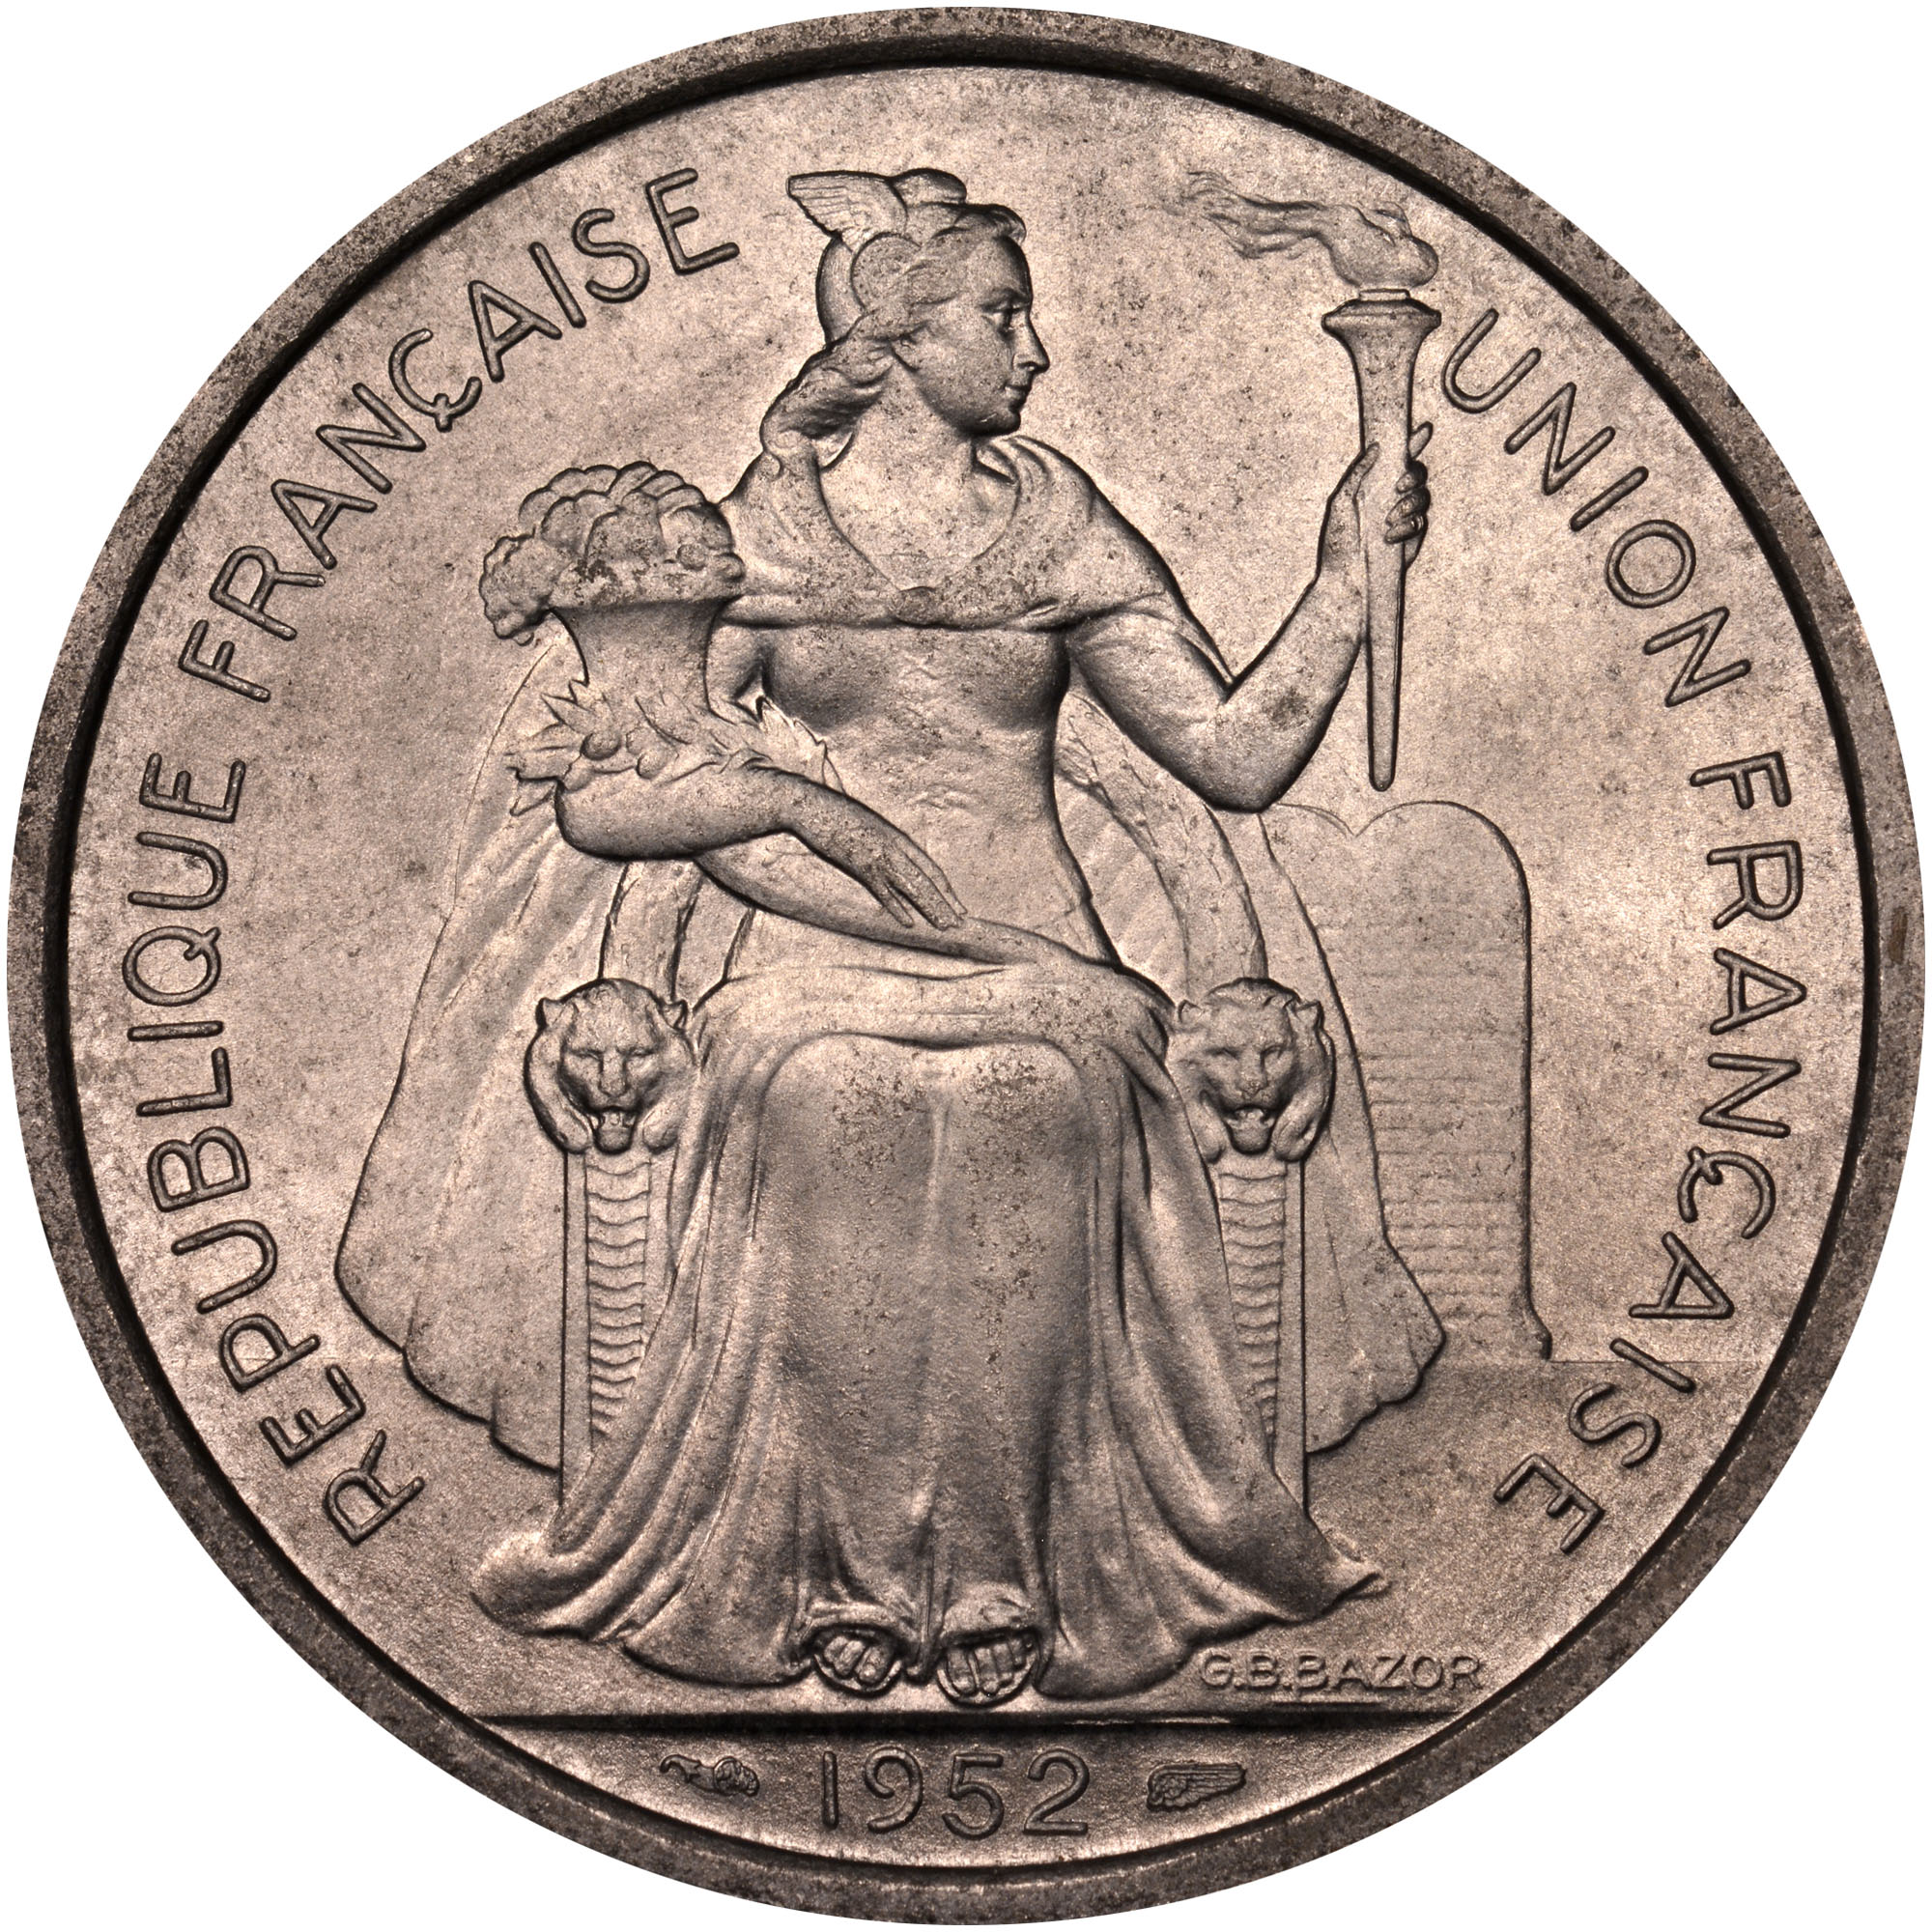 French Oceania 5 Francs obverse